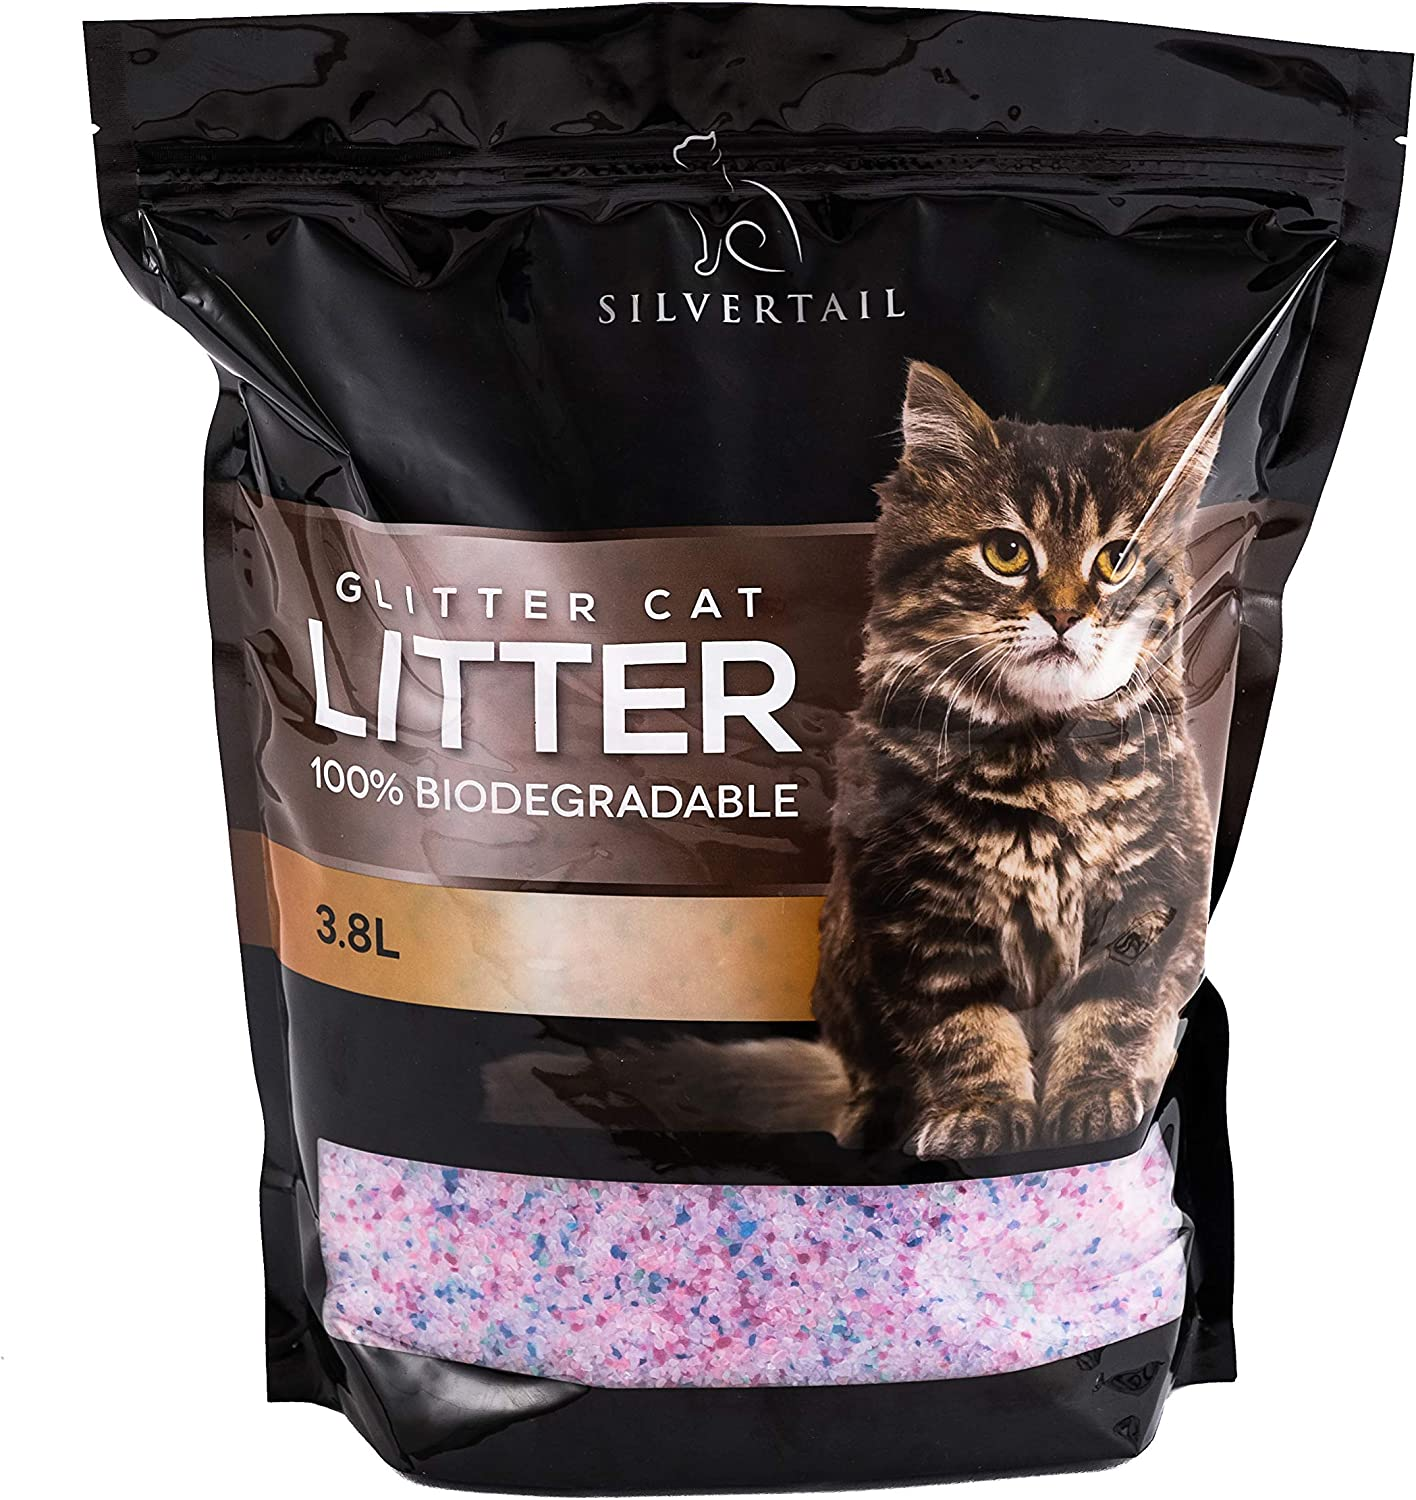 Silvertail Crystal Cat Litter 3.8pounds Glitter Cat Litter Biodegradable Pure Silica Gel Crystals Natural Odor Control Fragrance Free Highly absorbant Clumps for Easy scooping with Sand Like Feel